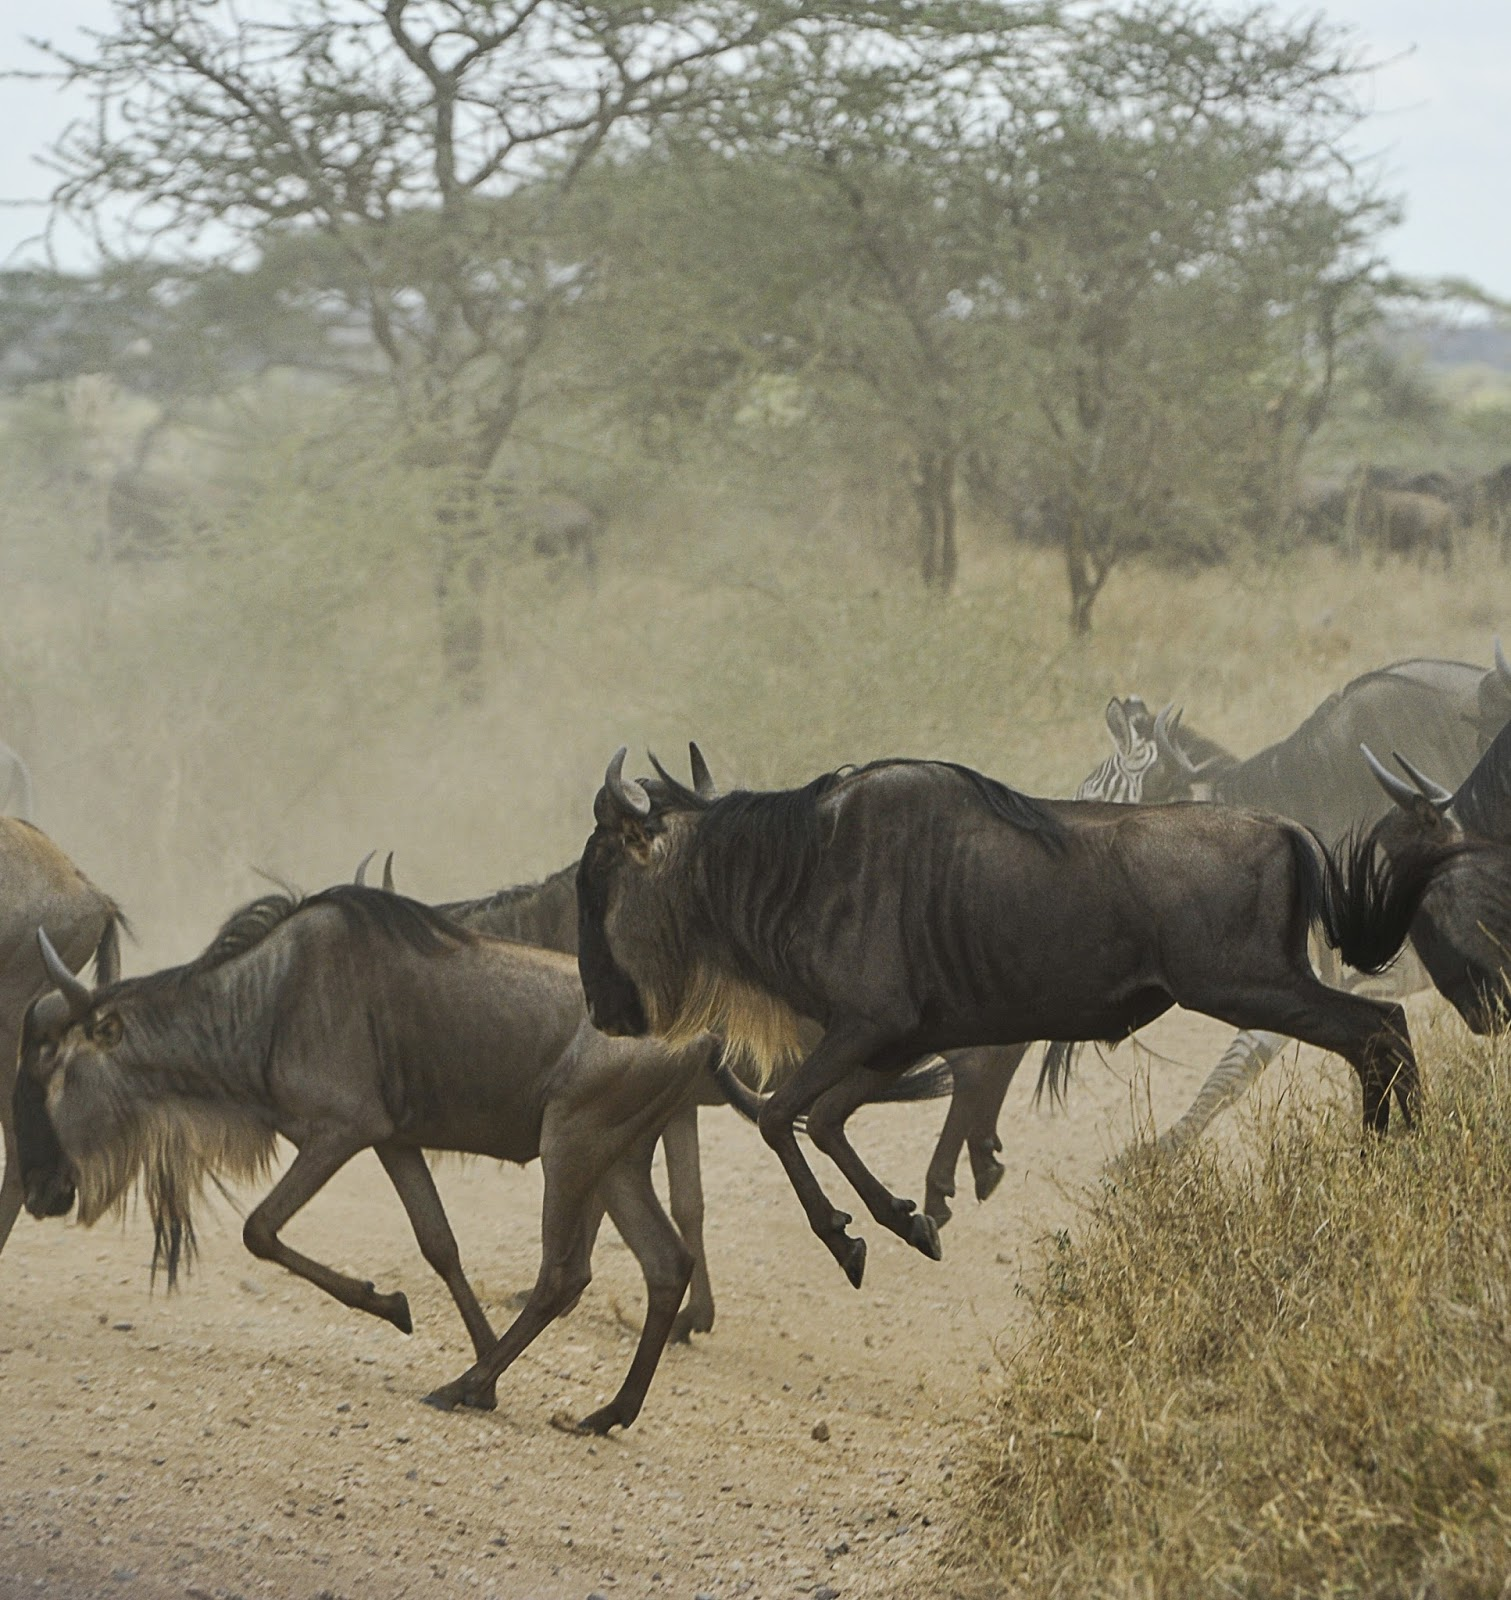 Picture of wildebeests running.